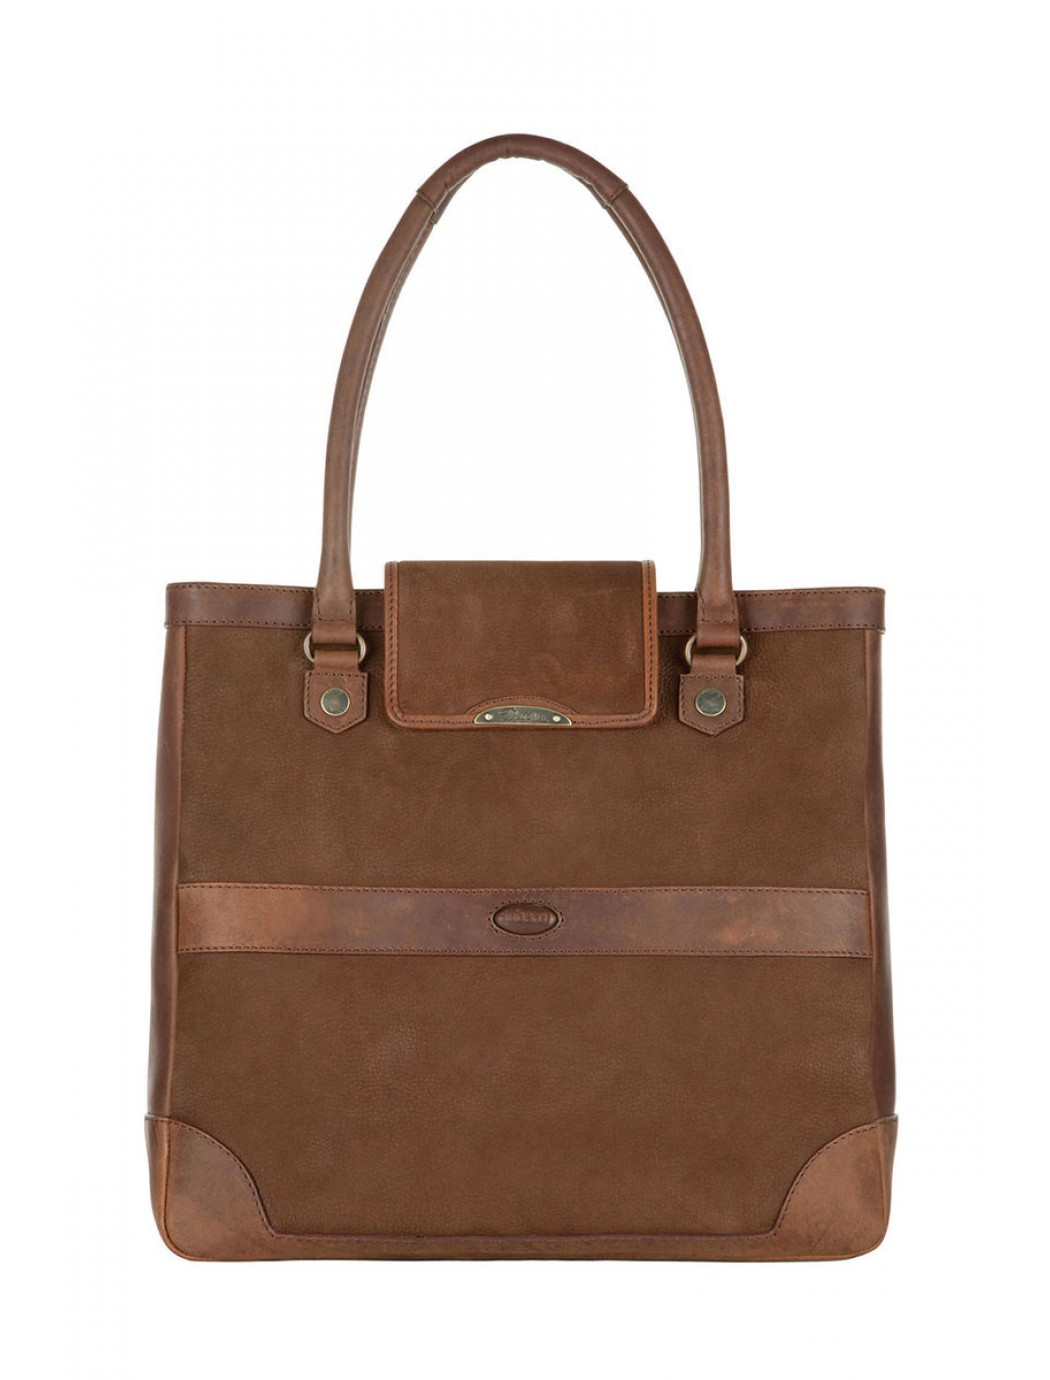 merrion-womens-bags-luggage-walnut